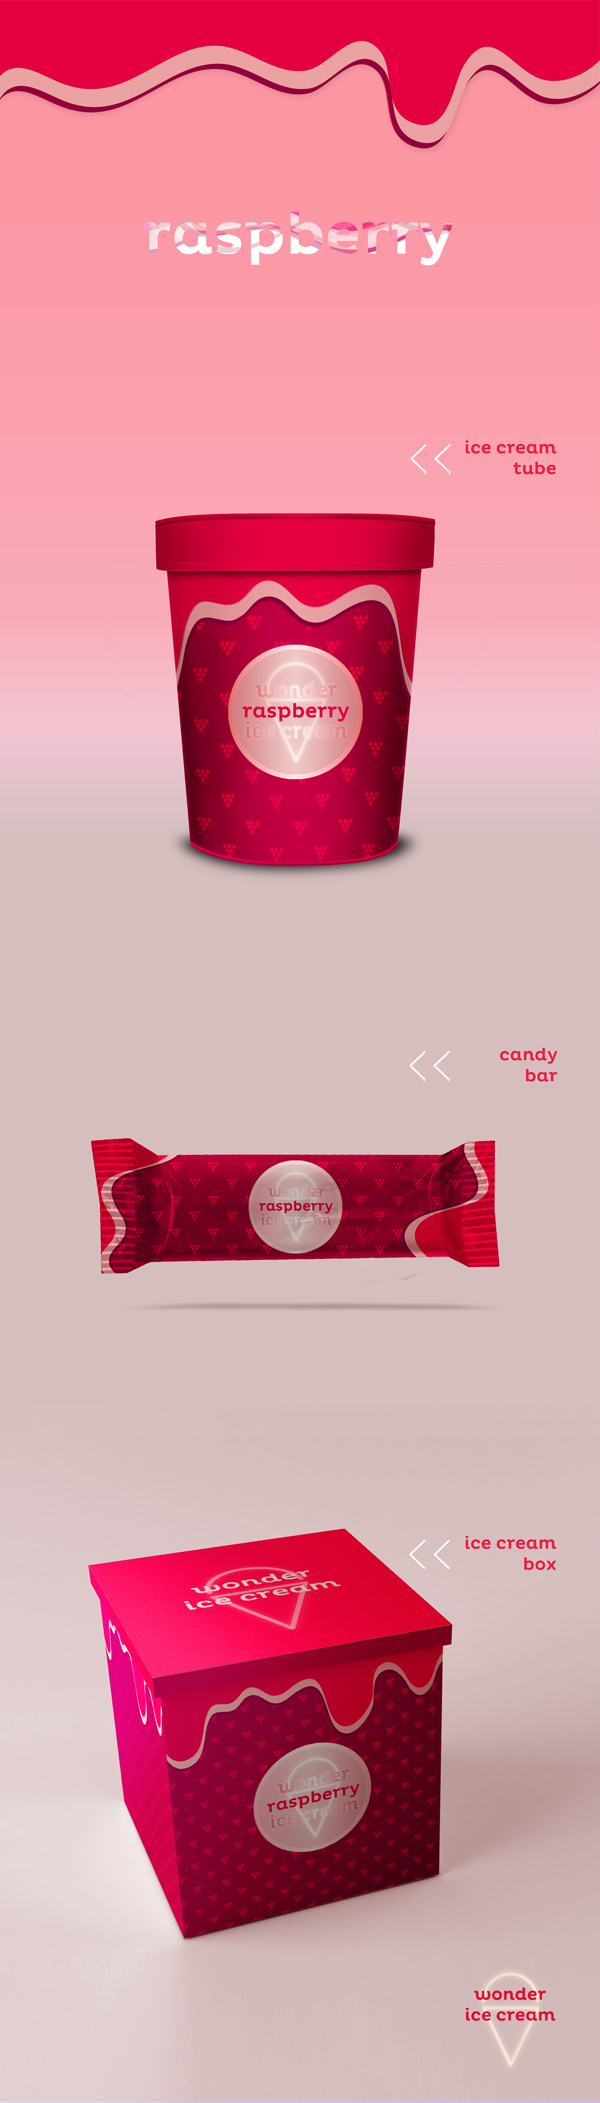 Raspberry_icecream_packaging